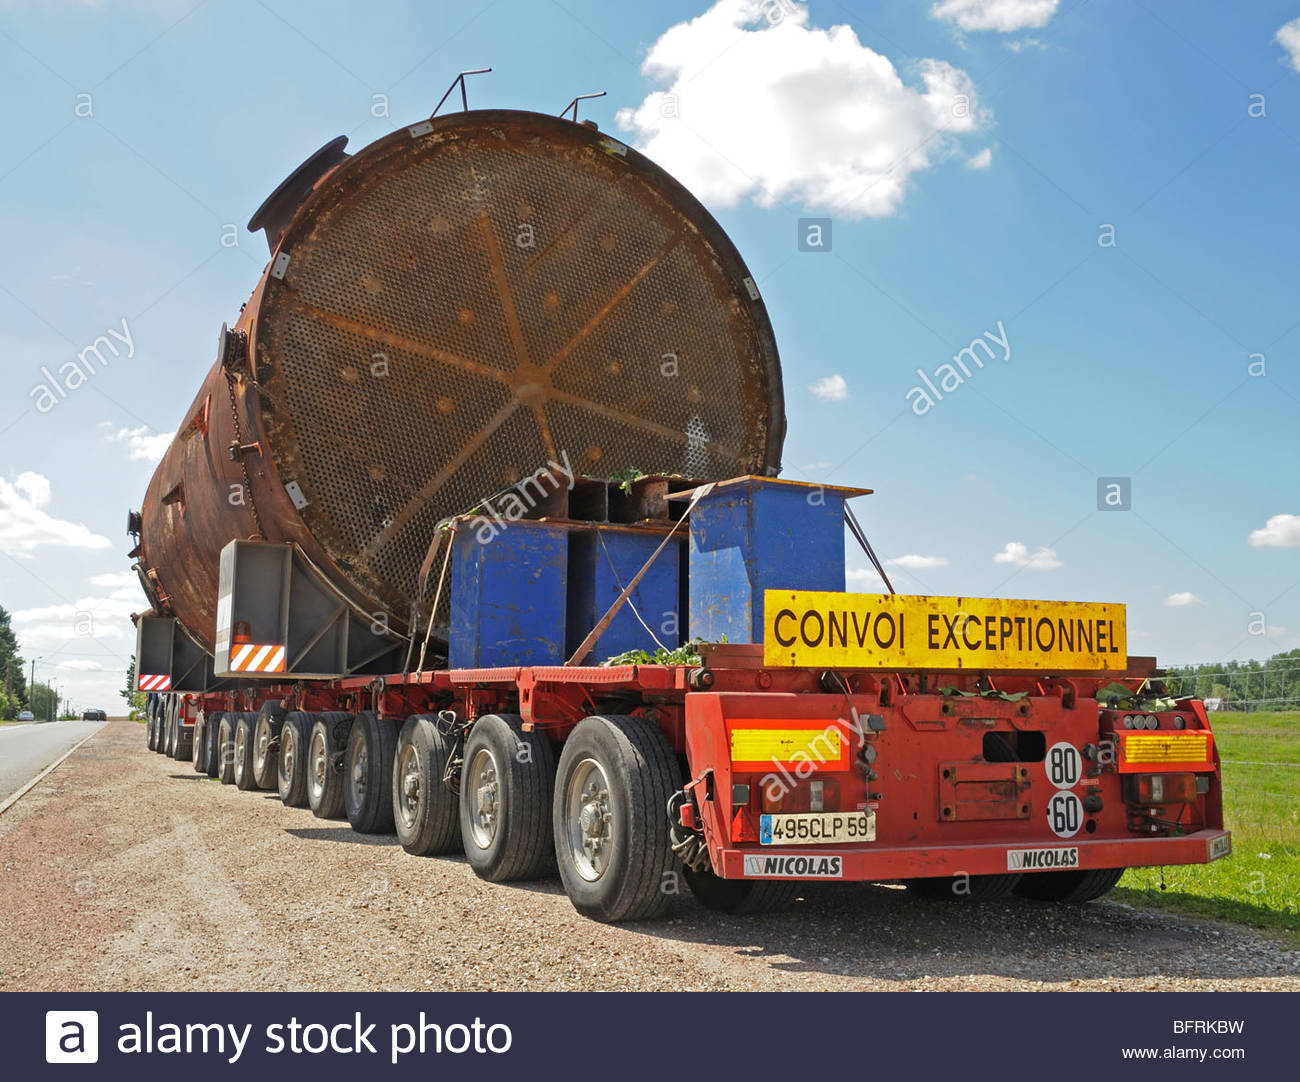 Axle Load Limit Stock Photos & Axle Load Limit Stock Images.